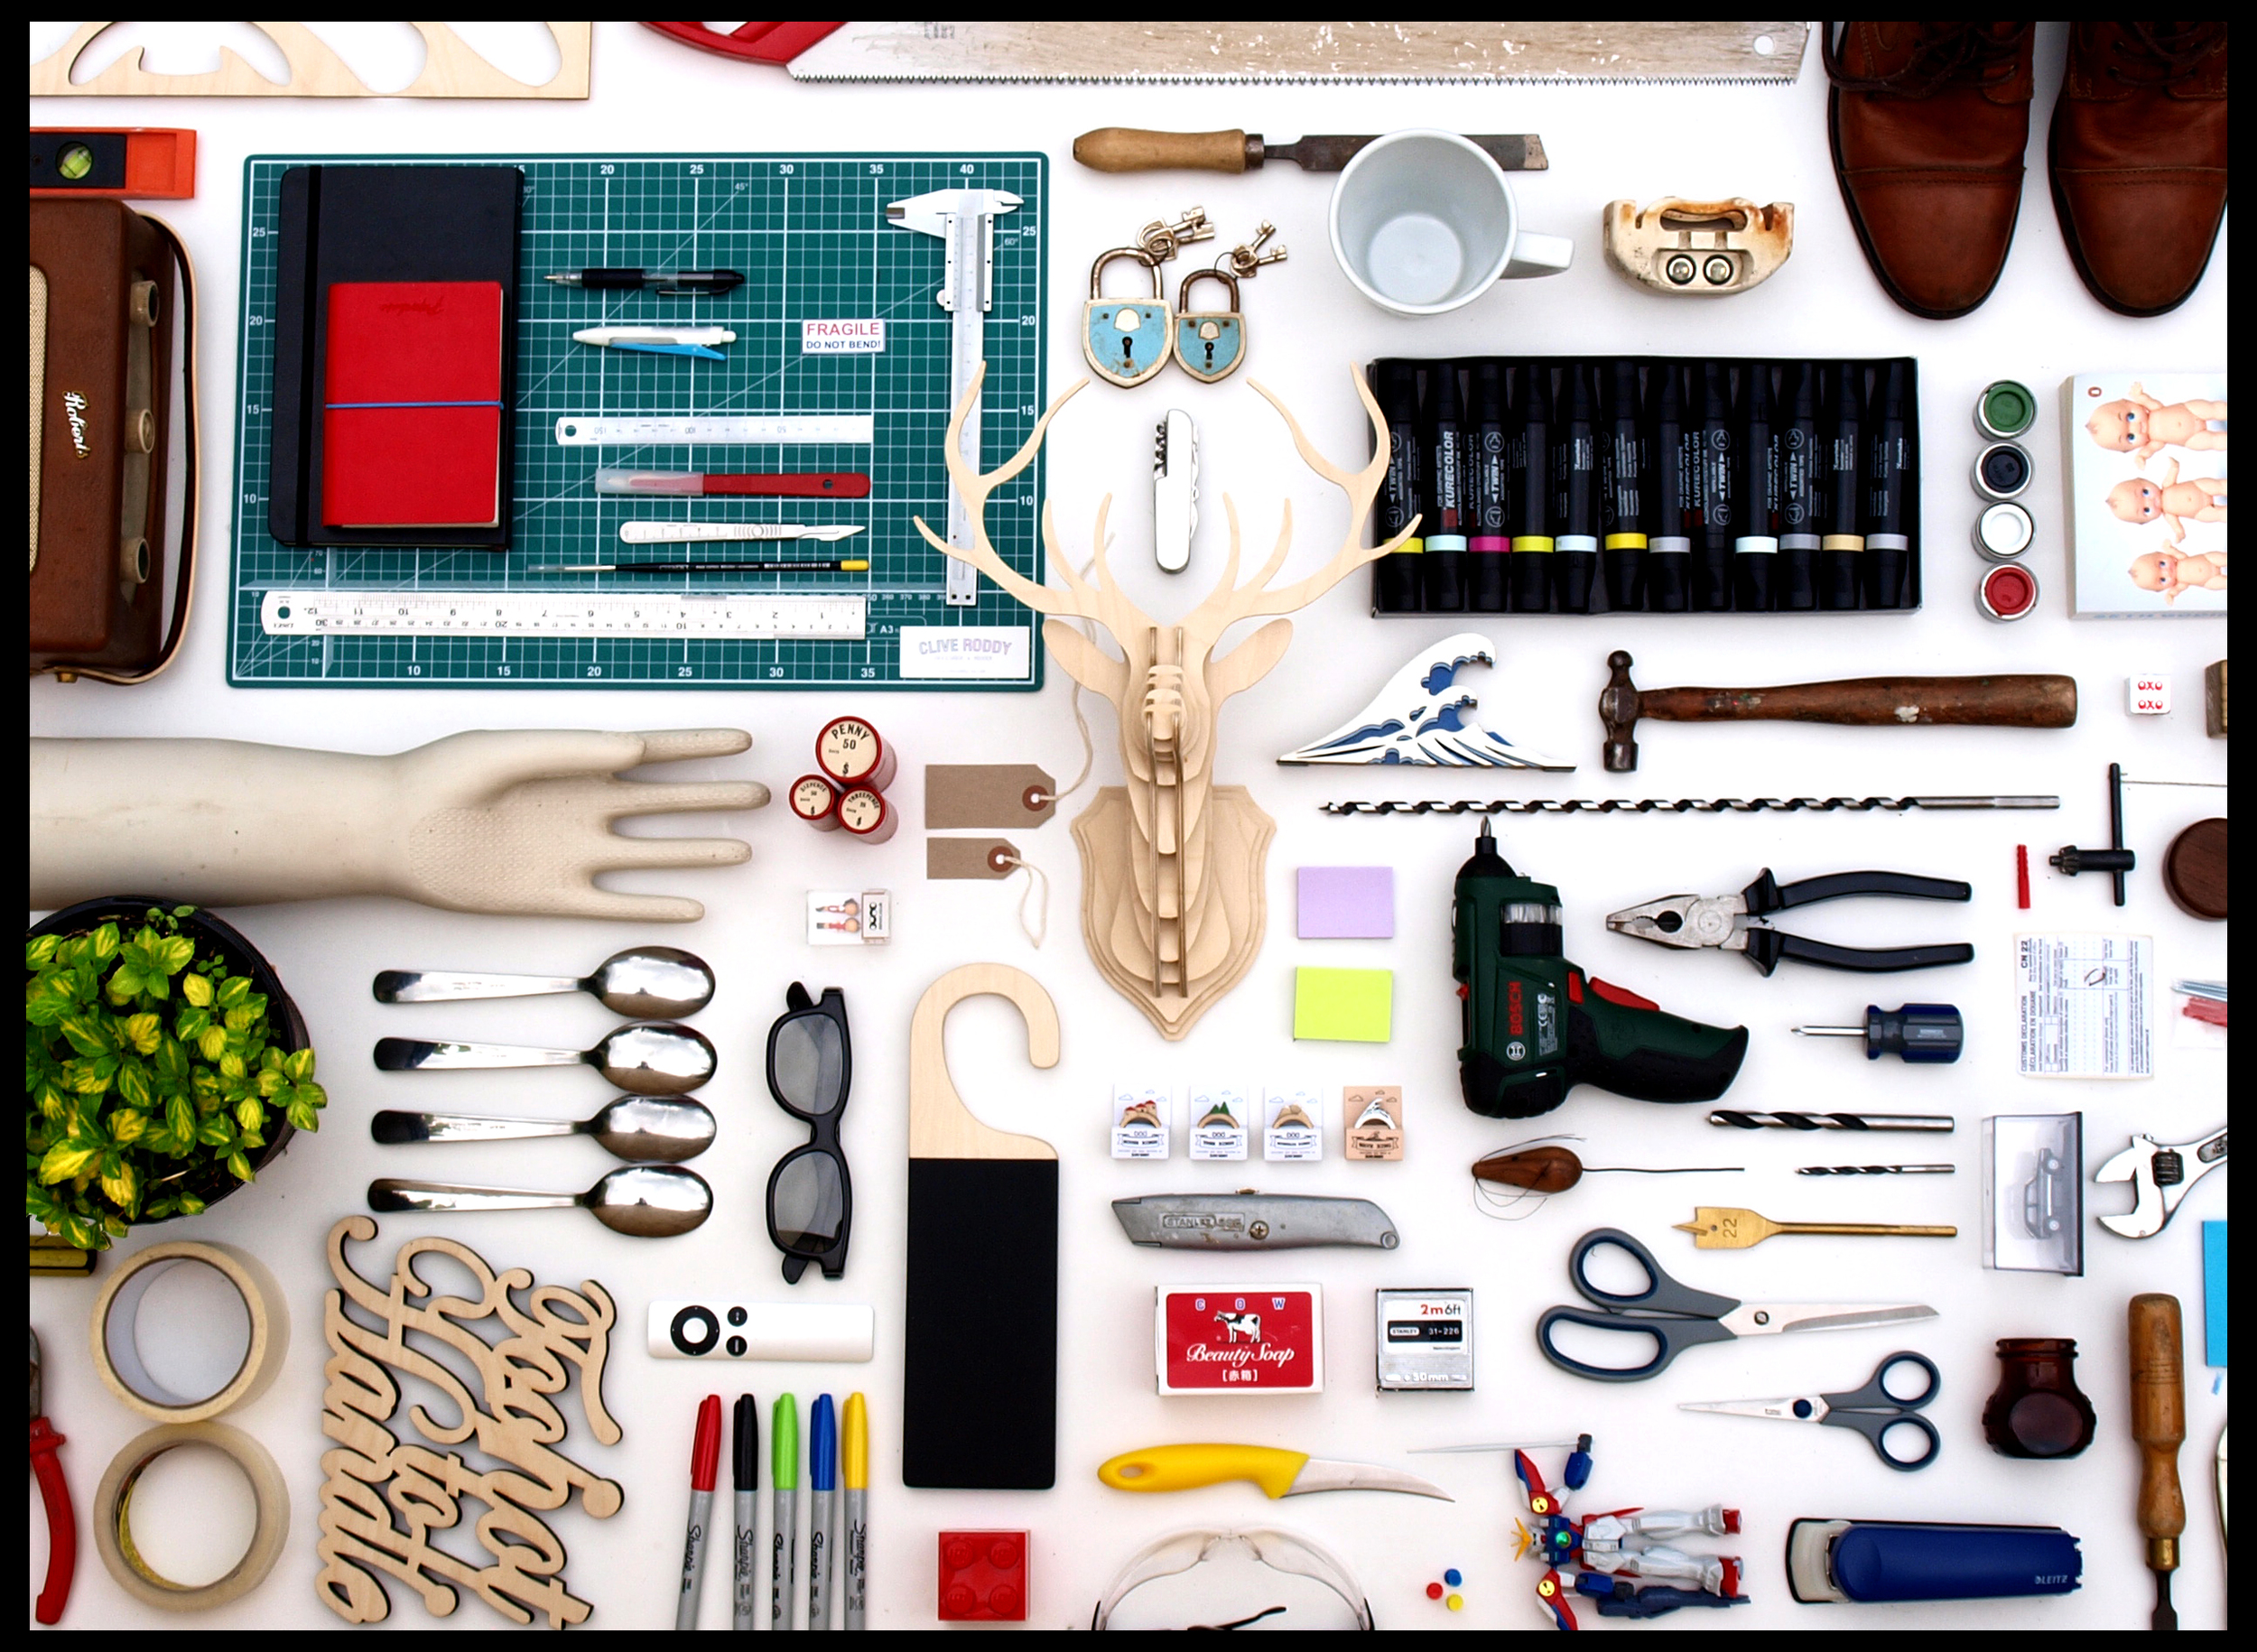 This image is a self portrait of objects that relate directly to me and my work.  Find out more.